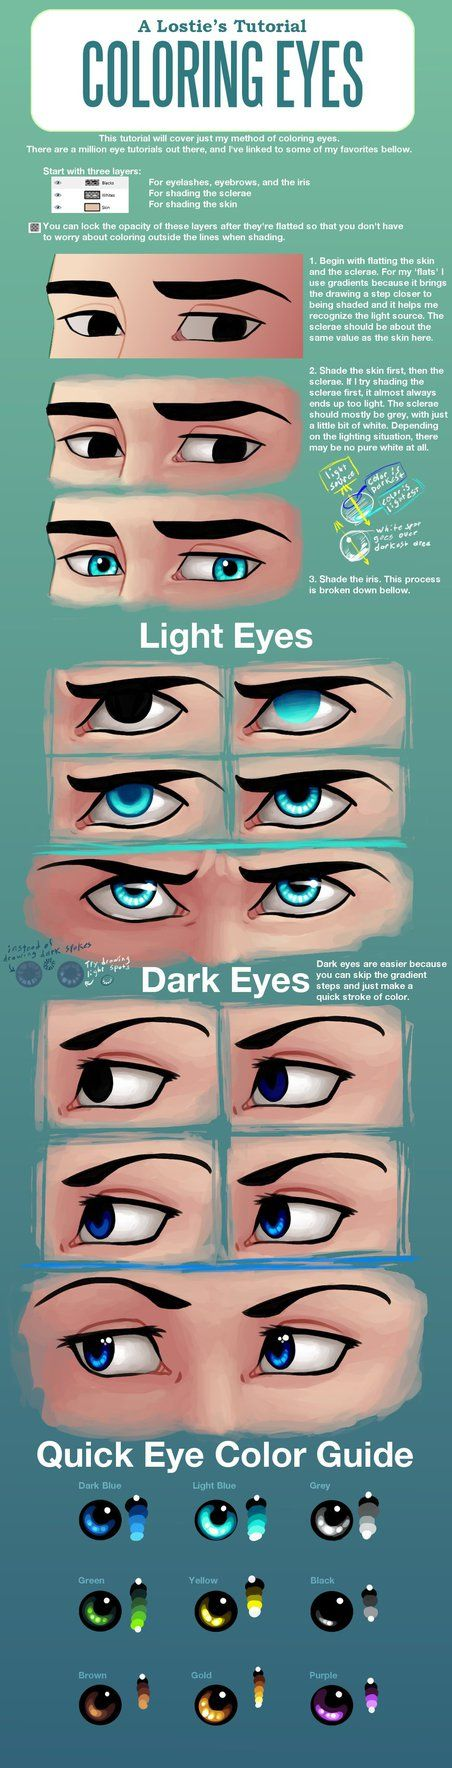 A Lostie's Tutorial - Coloring Eyes by lostie815 on deviantART